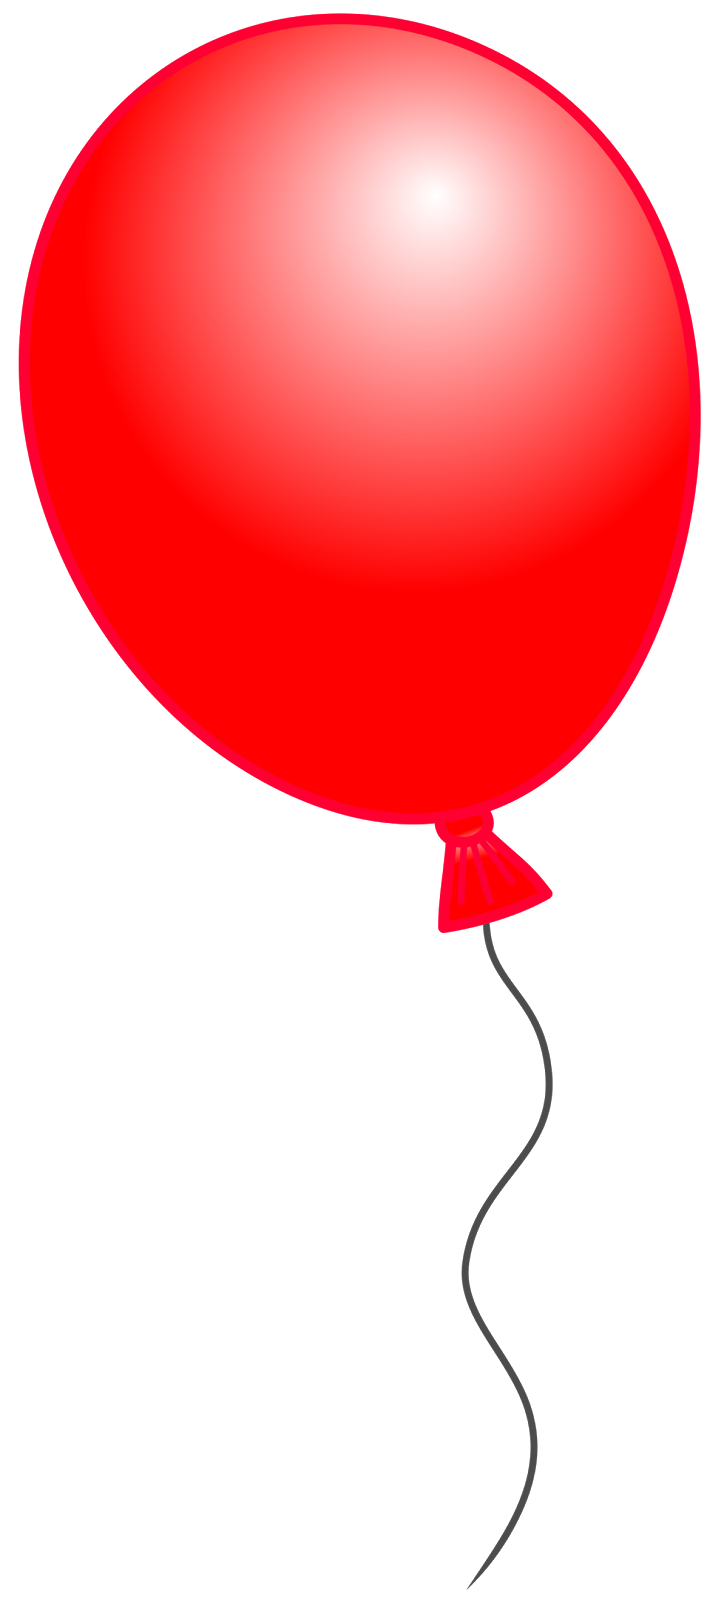 Darts clipart balloon. Challenge clip art library